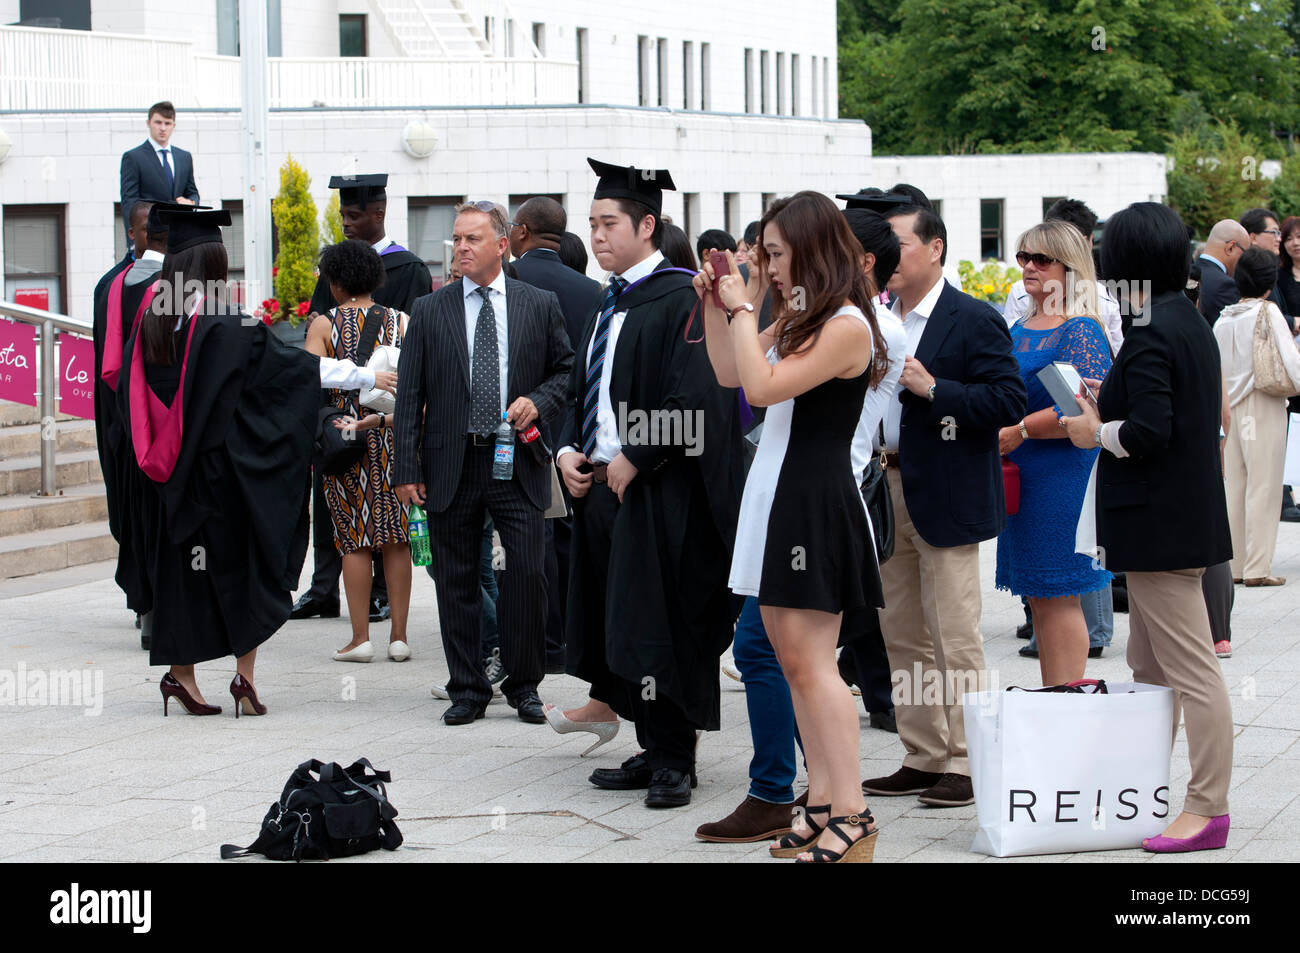 Warwick University graduation day, graduates with friends and families. - Stock Image